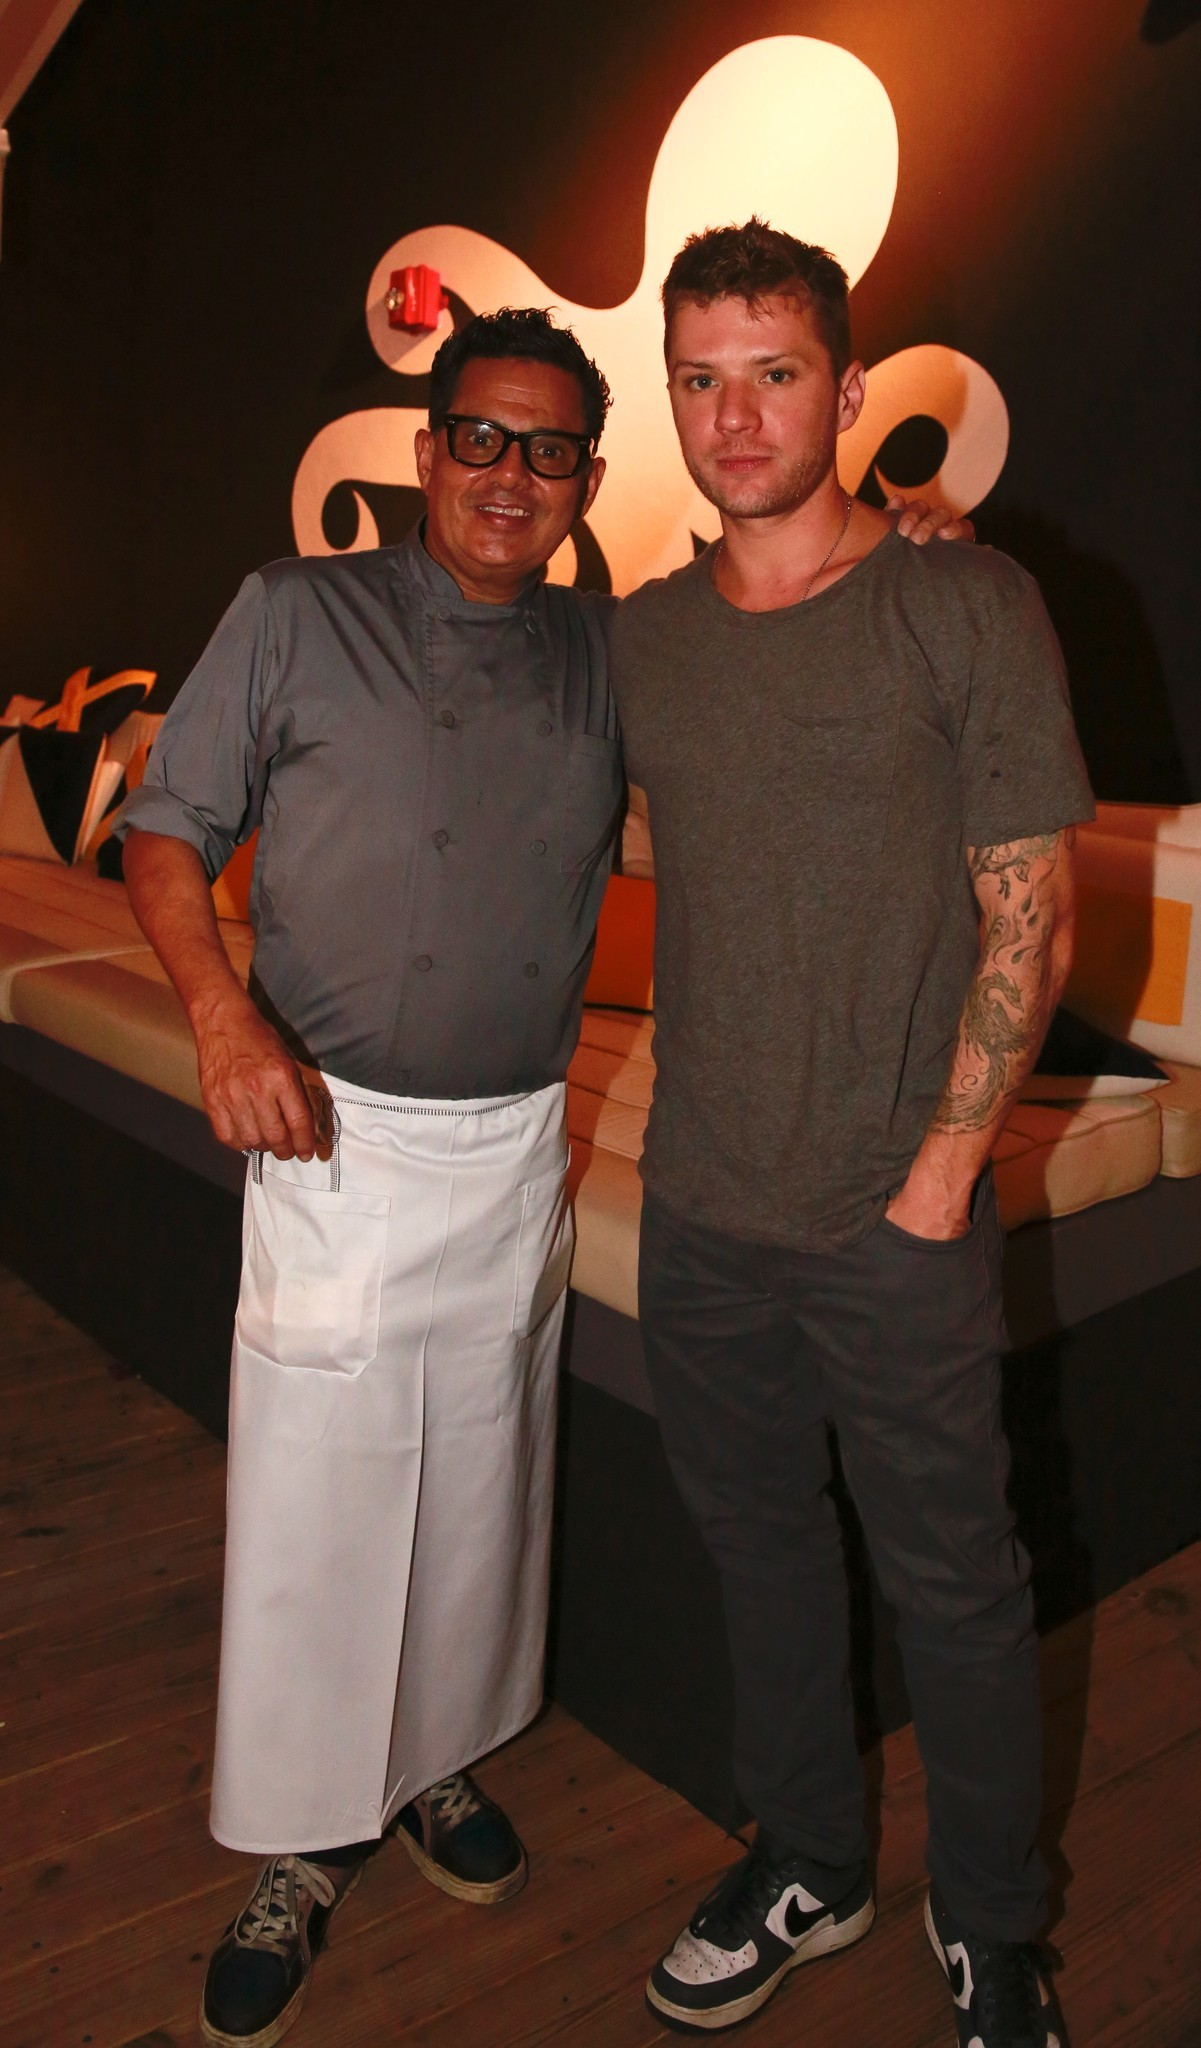 Celeb-spotting around South Florida - Ryan Phillippe in Miami